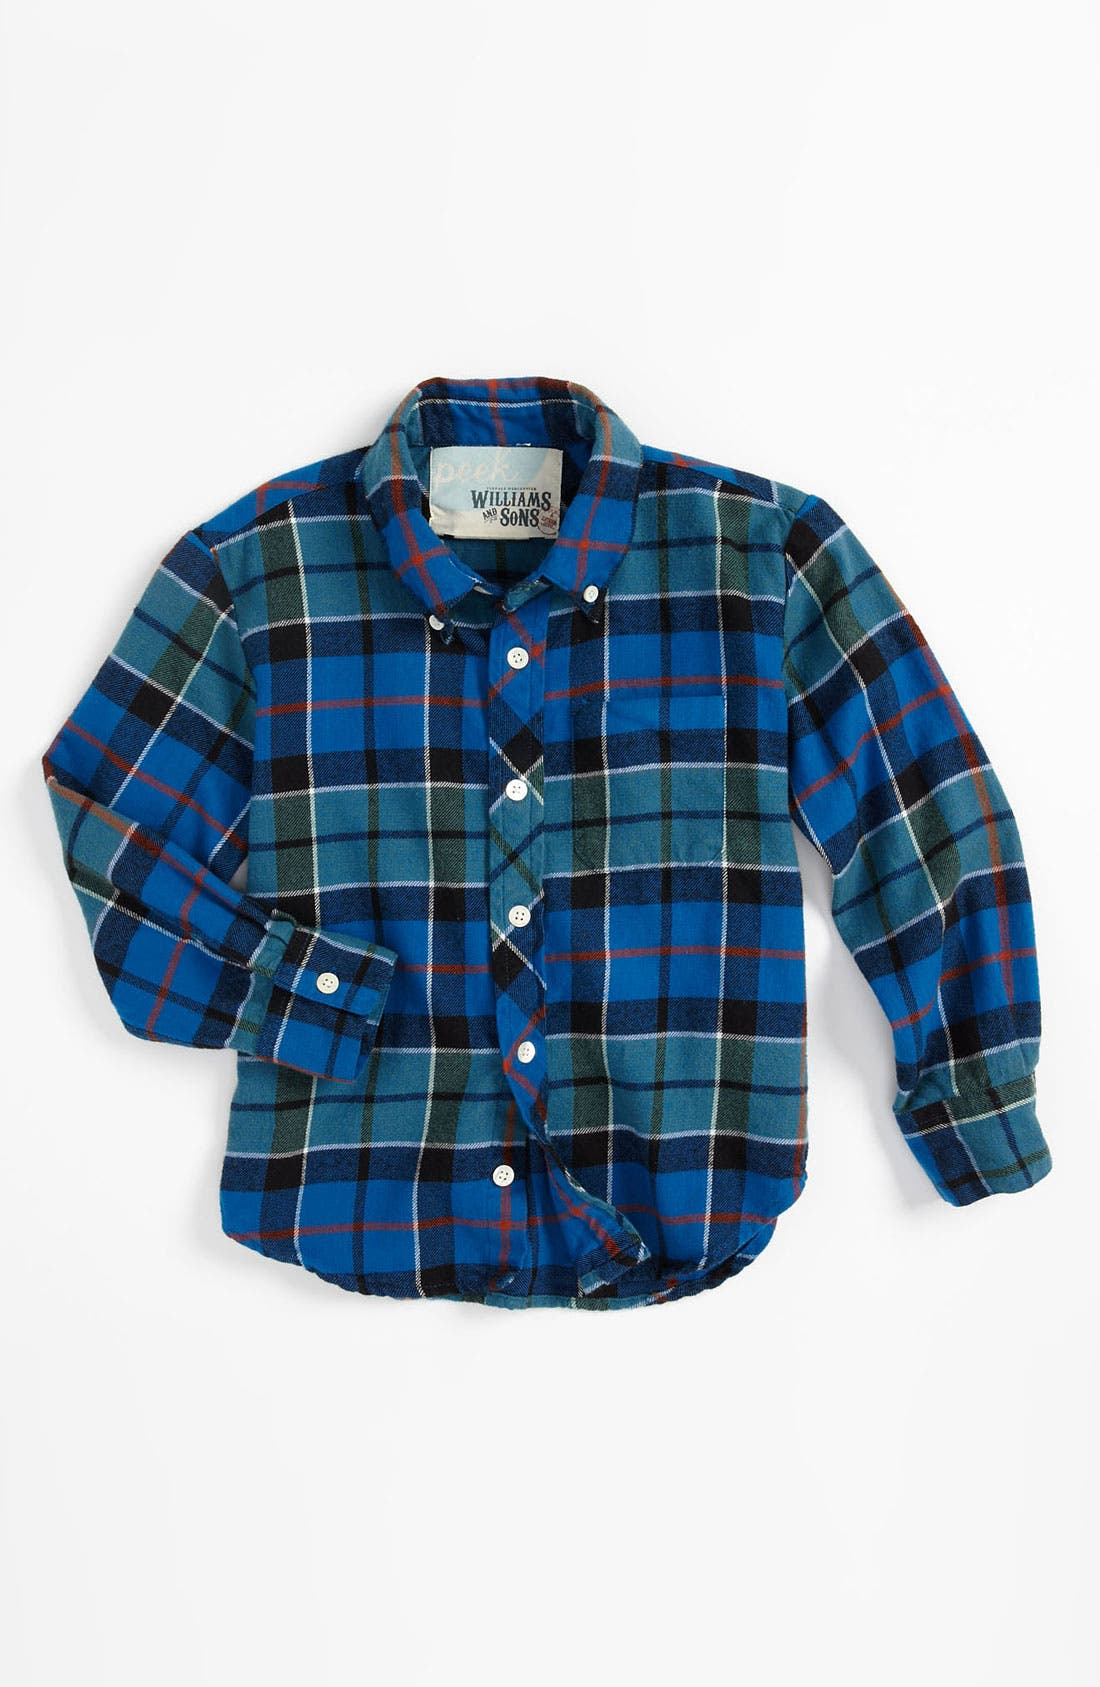 Alternate Image 1 Selected - Peek 'Barstow' Plaid Shirt (Toddler, Little Boys & Big Boys)